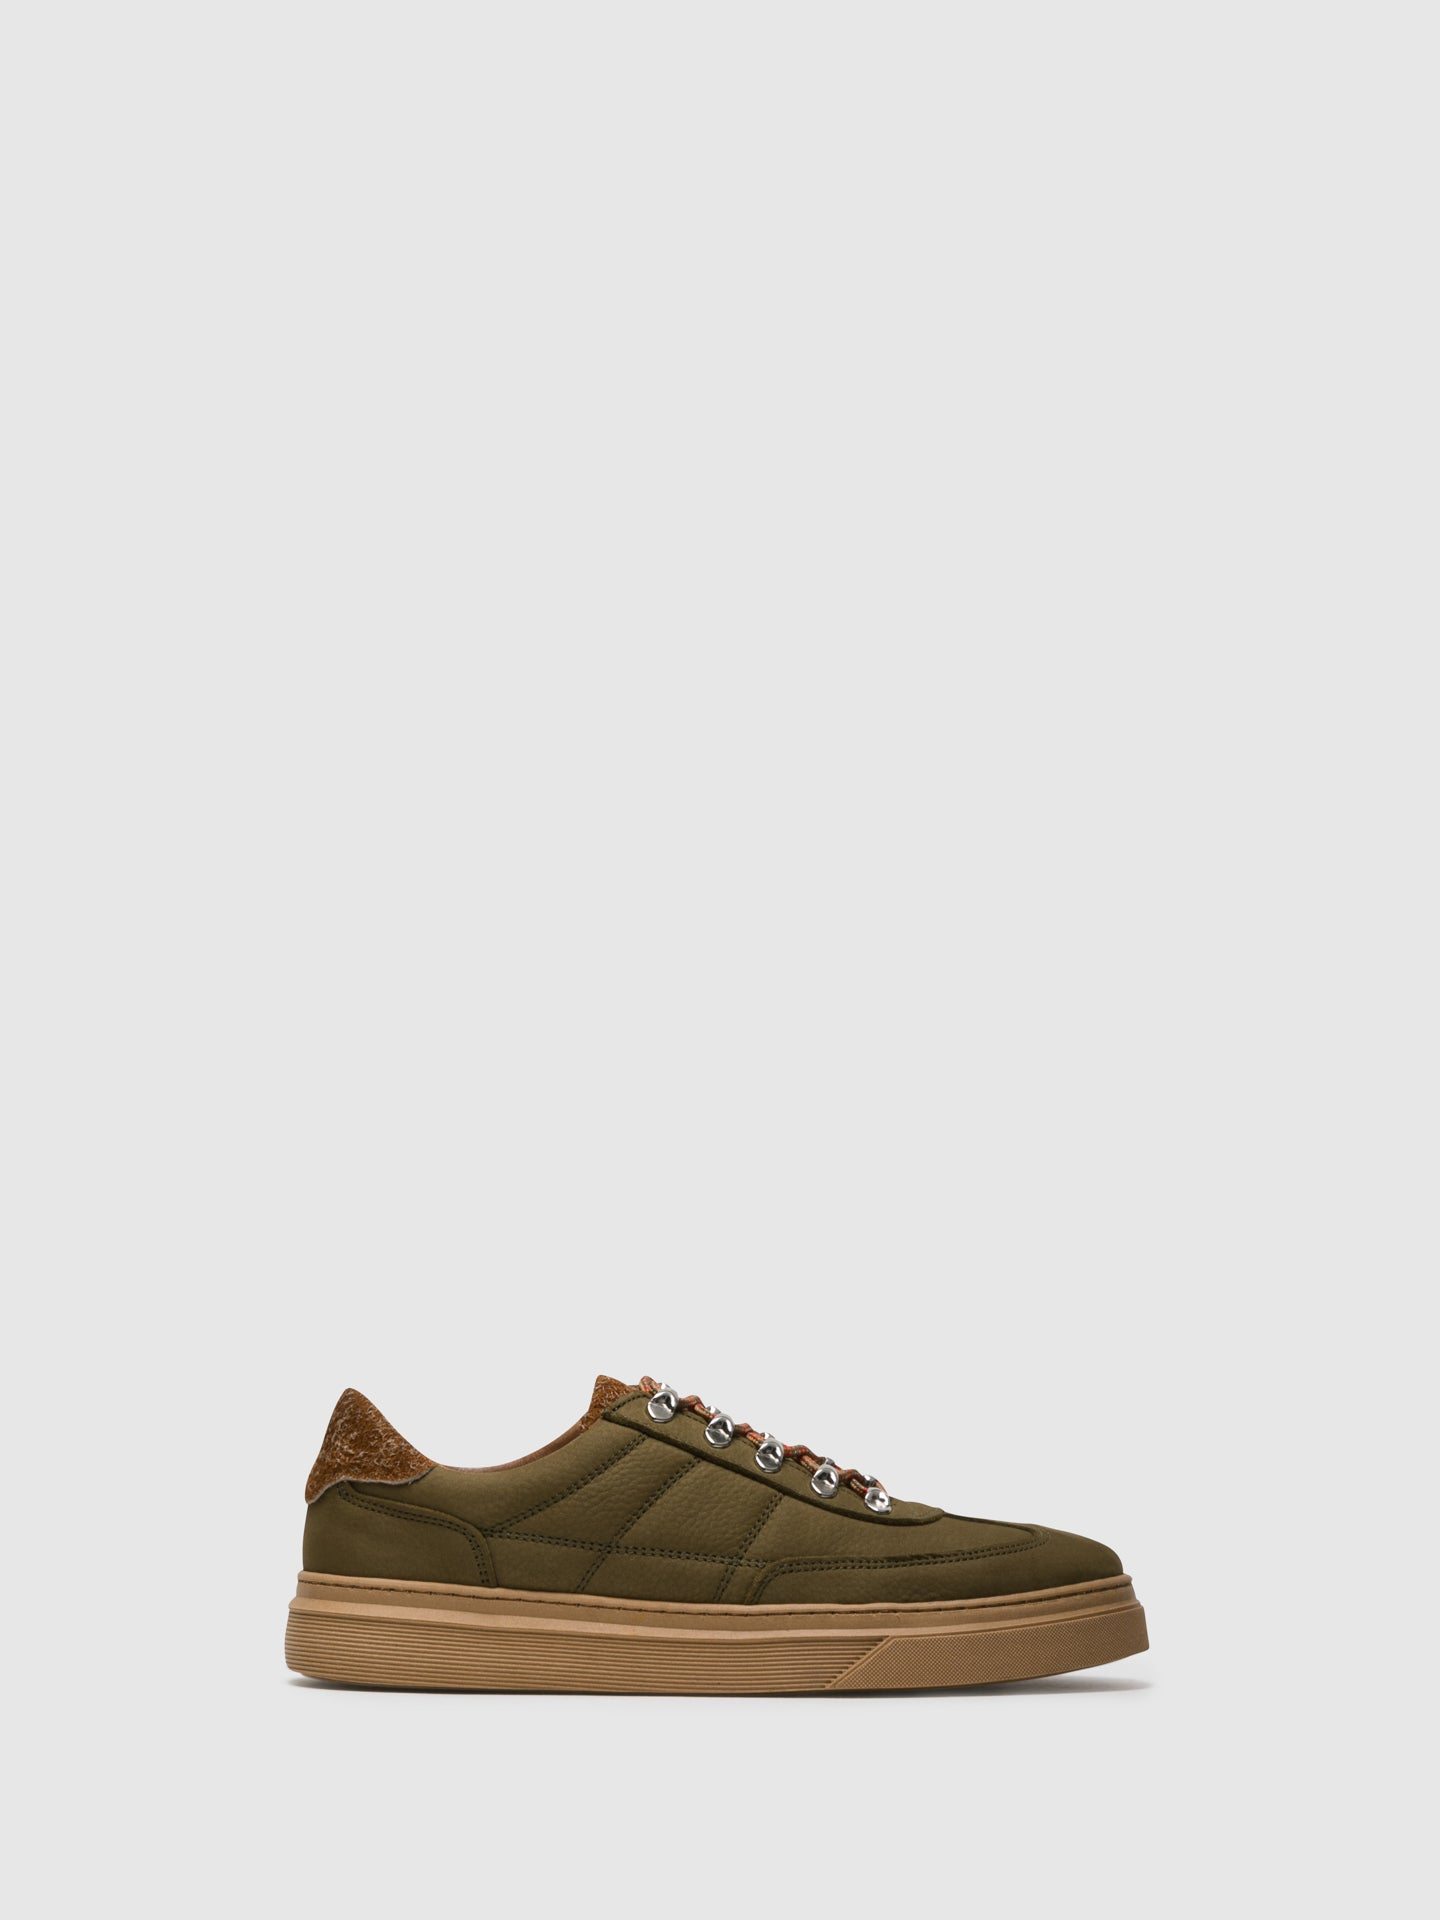 Foreva Khaki Lace-up Shoes